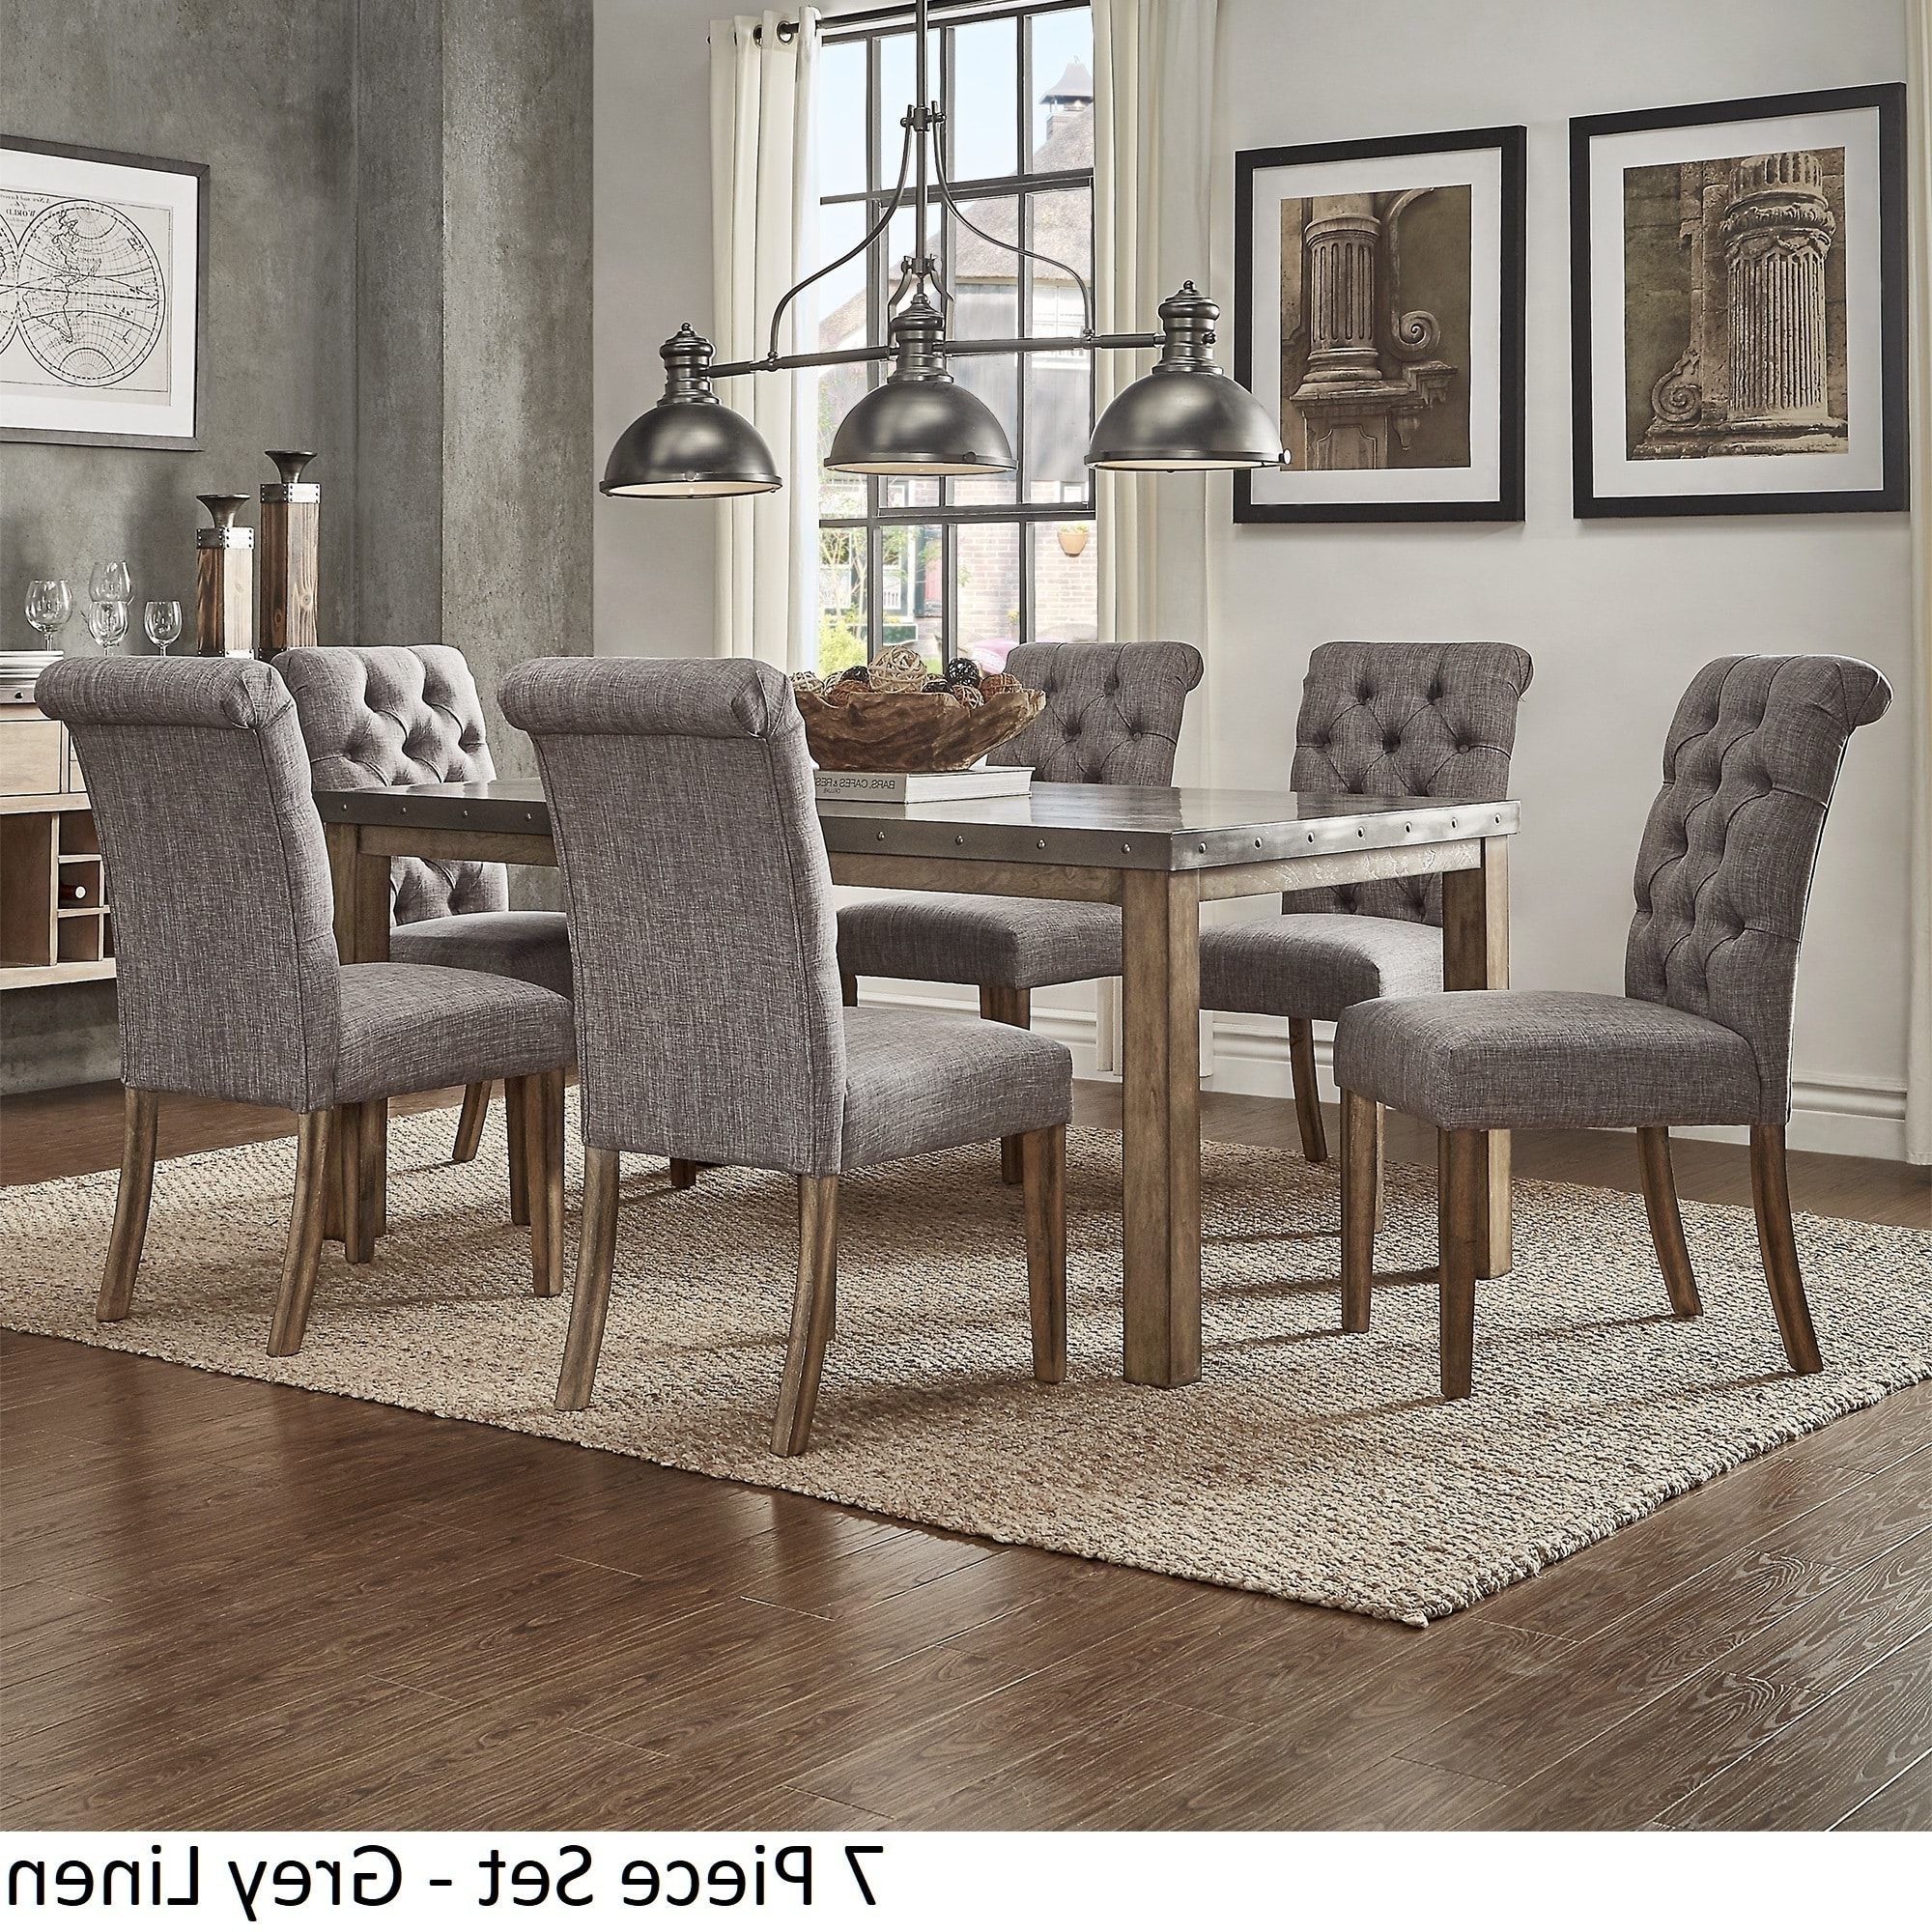 Most Up To Date Cassidy Stainless Steel Top Rectangle Dining Table Setinspire Q Throughout Candice Ii Extension Rectangle Dining Tables (View 12 of 25)